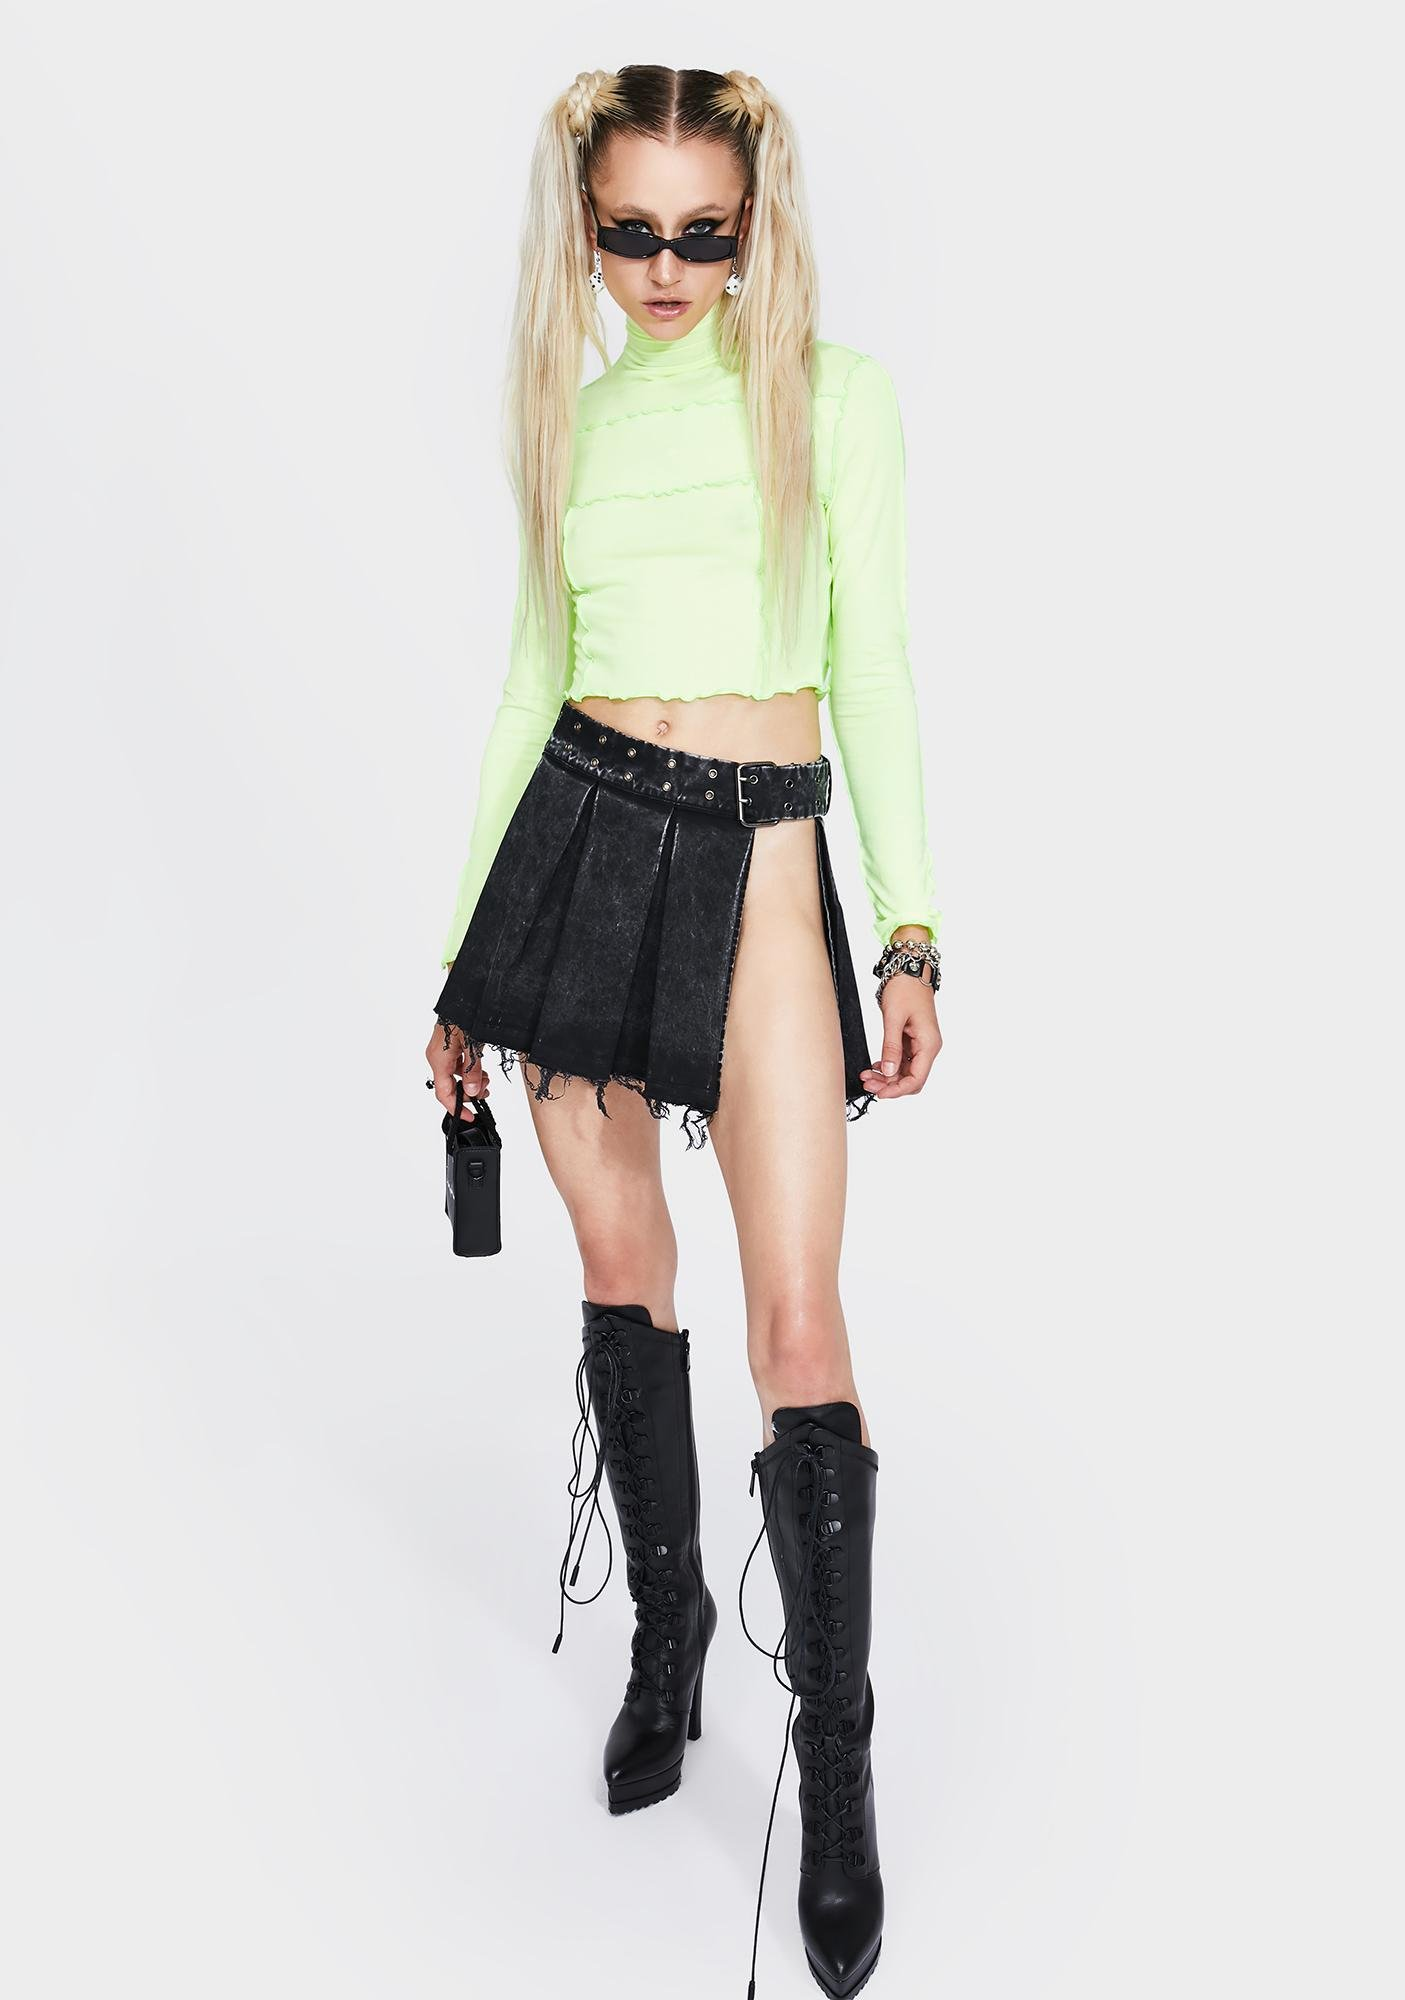 Kiki Riki Shock So Overlooked Crop Top